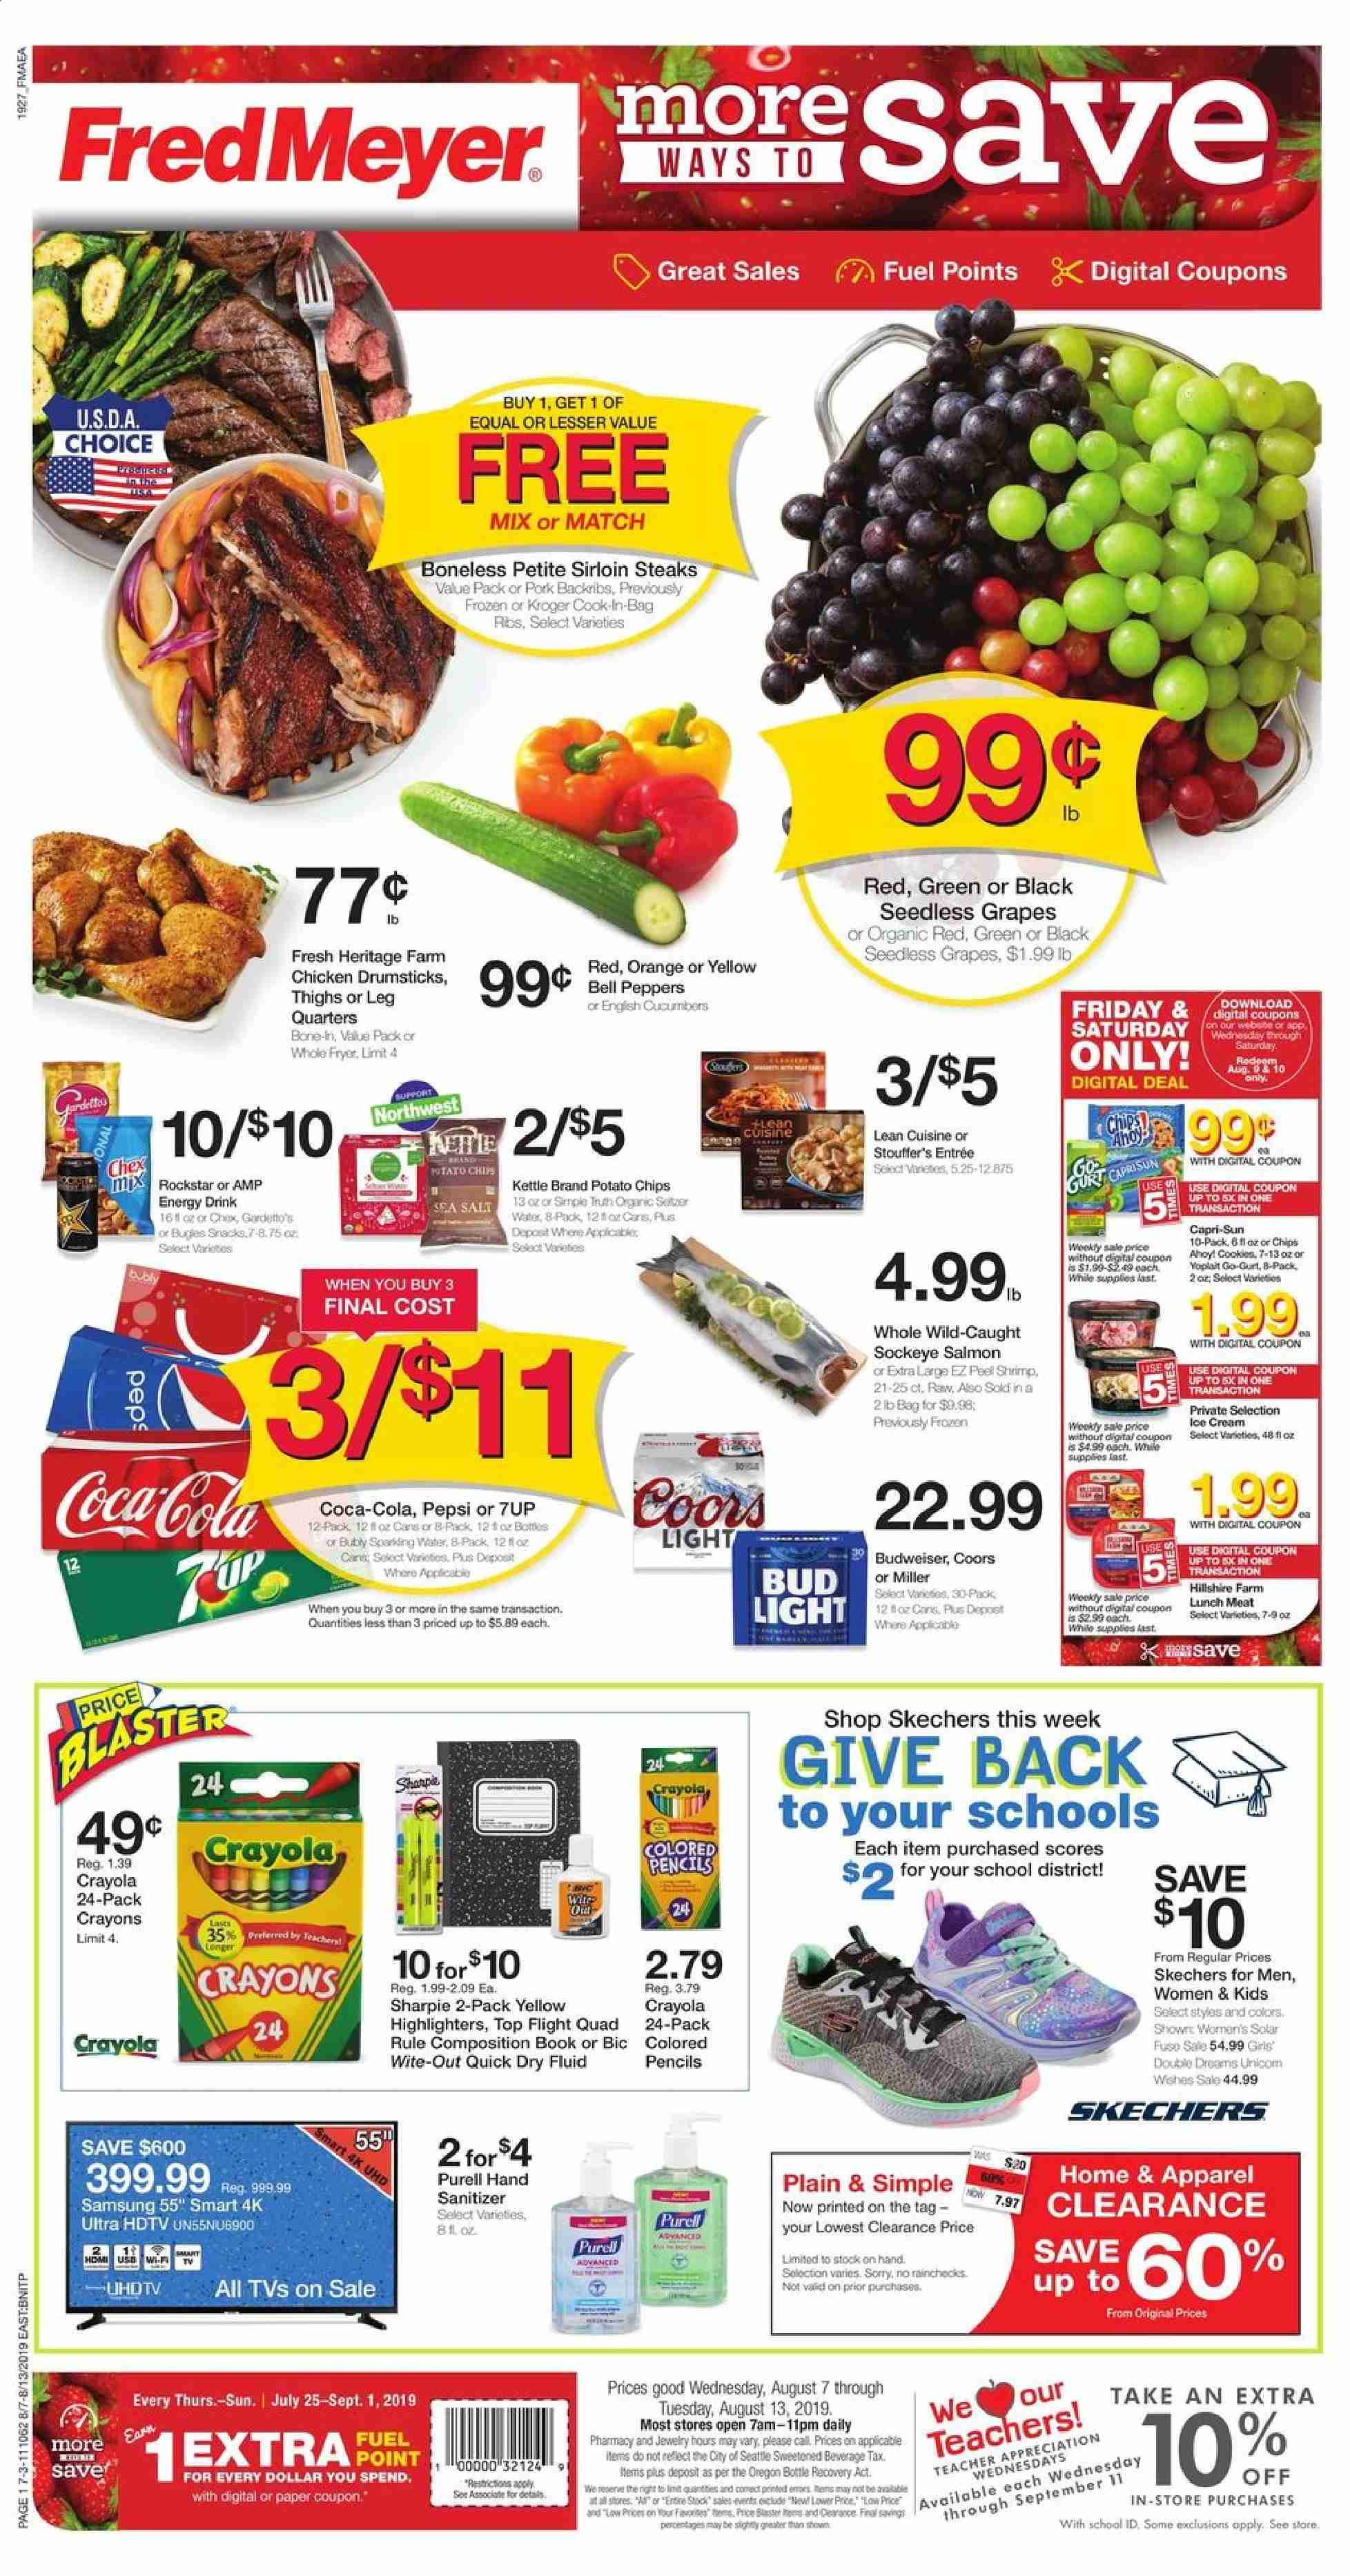 Fred Meyer Flyer - 08.07.2019 - 08.13.2019 - Sales products - Budweiser, Bud Light, Coors, bell peppers, cucumbers, peppers, grapes, seedless grapes, orange, salmon, shrimps, Hillshire Farm, lunch meat, cookies, potato chips, chips, snack, salt, sea salt, Coca-Cola, Pepsi, energy drink, water, chicken, chicken legs, pork meat, BIC, hand sanitizer, quick dry, Frozen, paper, pencil, book, Samsung, HDTV, TV, fuel, cream, Skechers. Page 1.